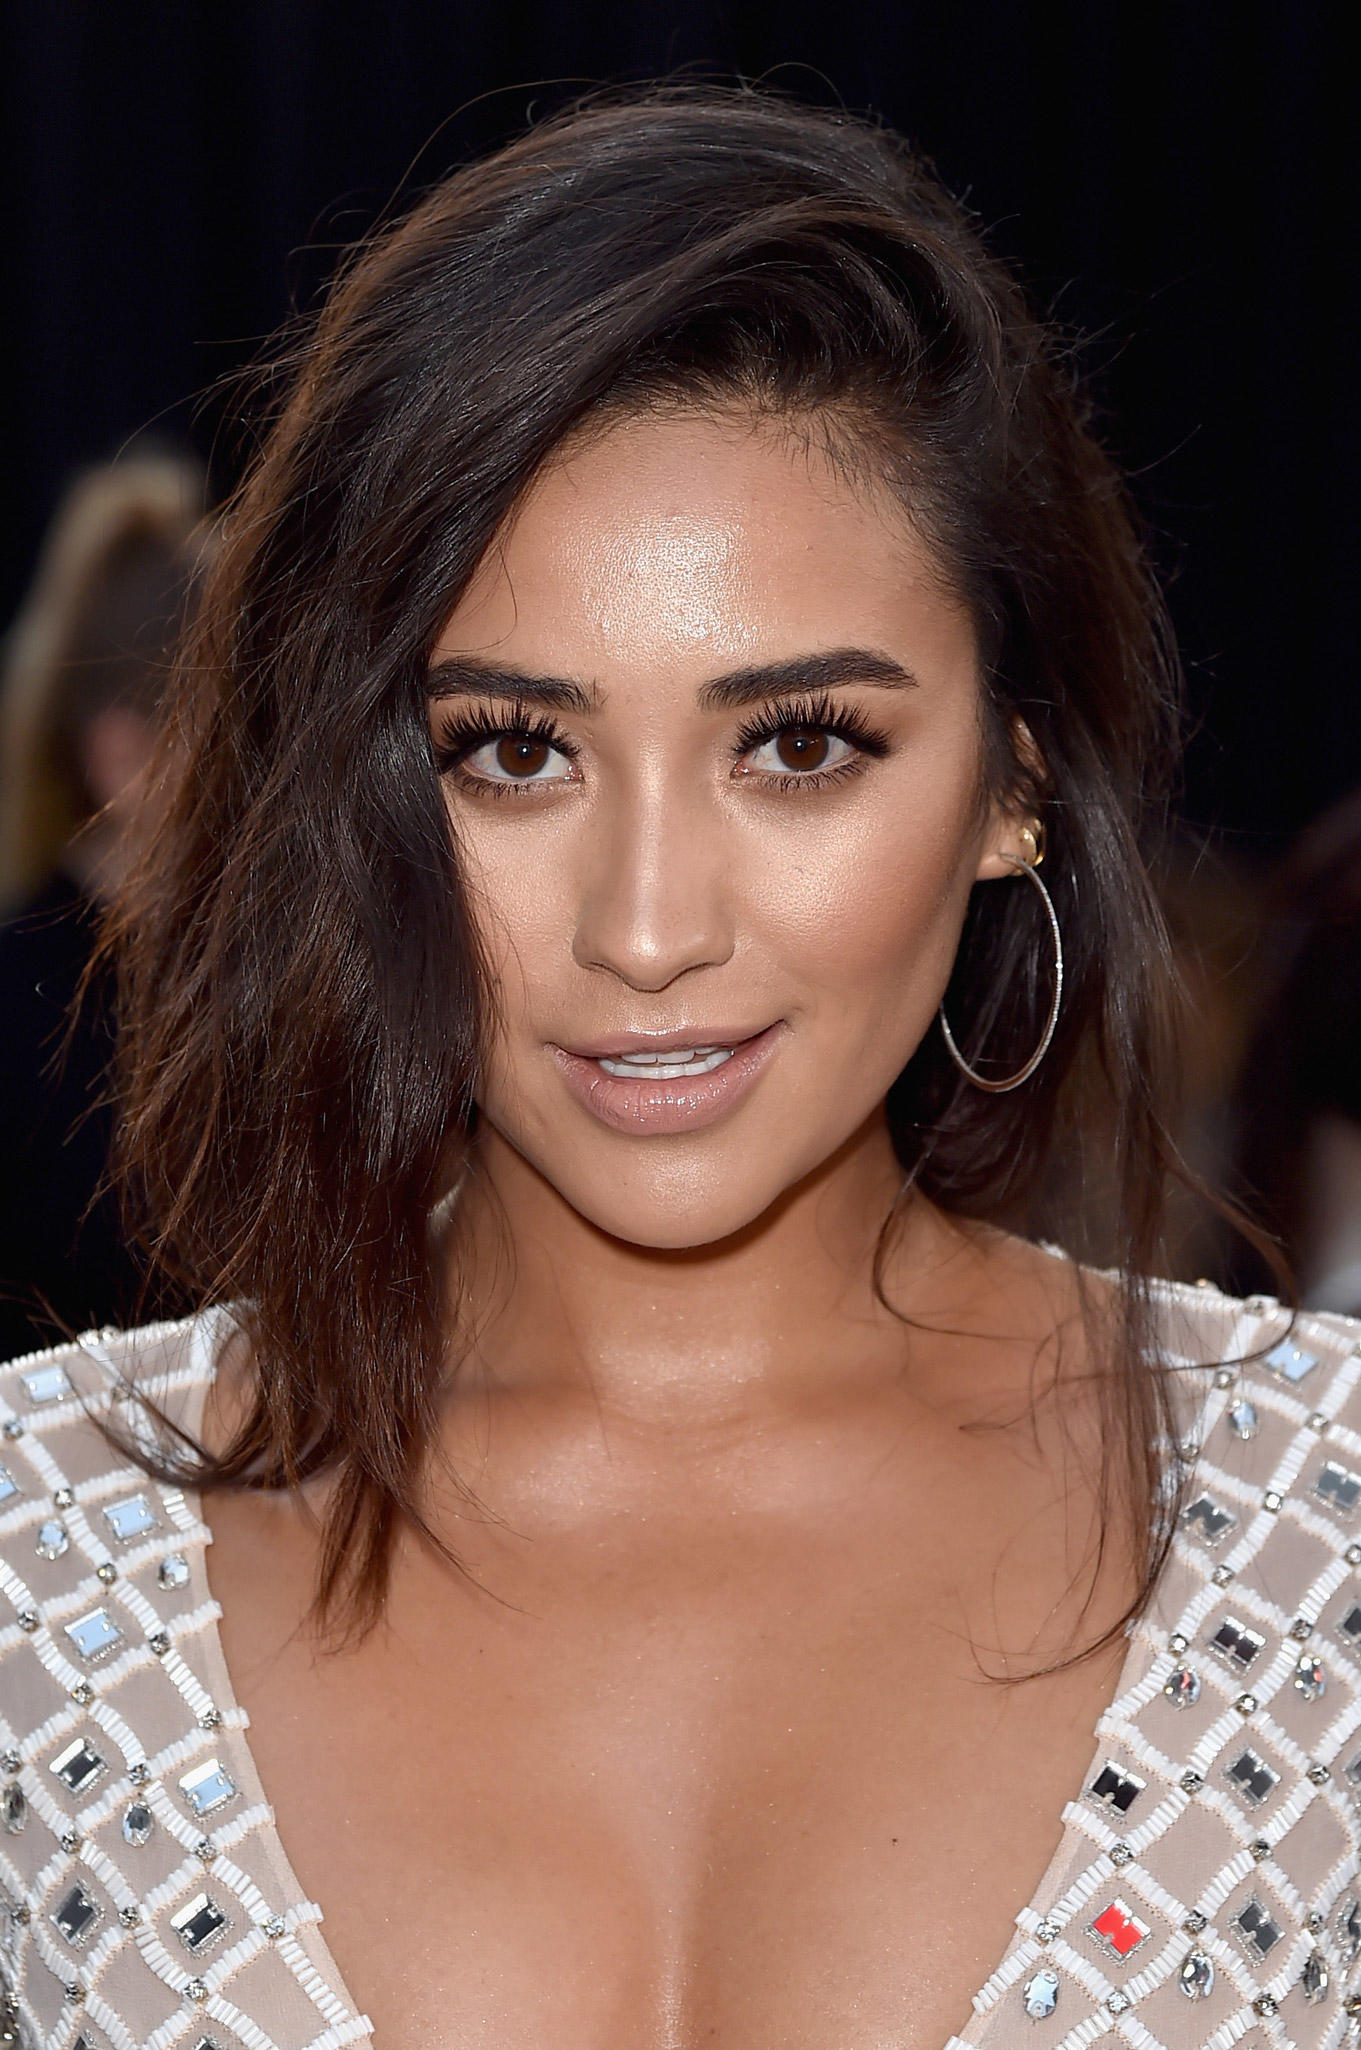 Shay Mitchell at the Open Roads World Premiere of 'Mother's Day' at TCL Chinese Theatre IMAX in Hollywood, California.